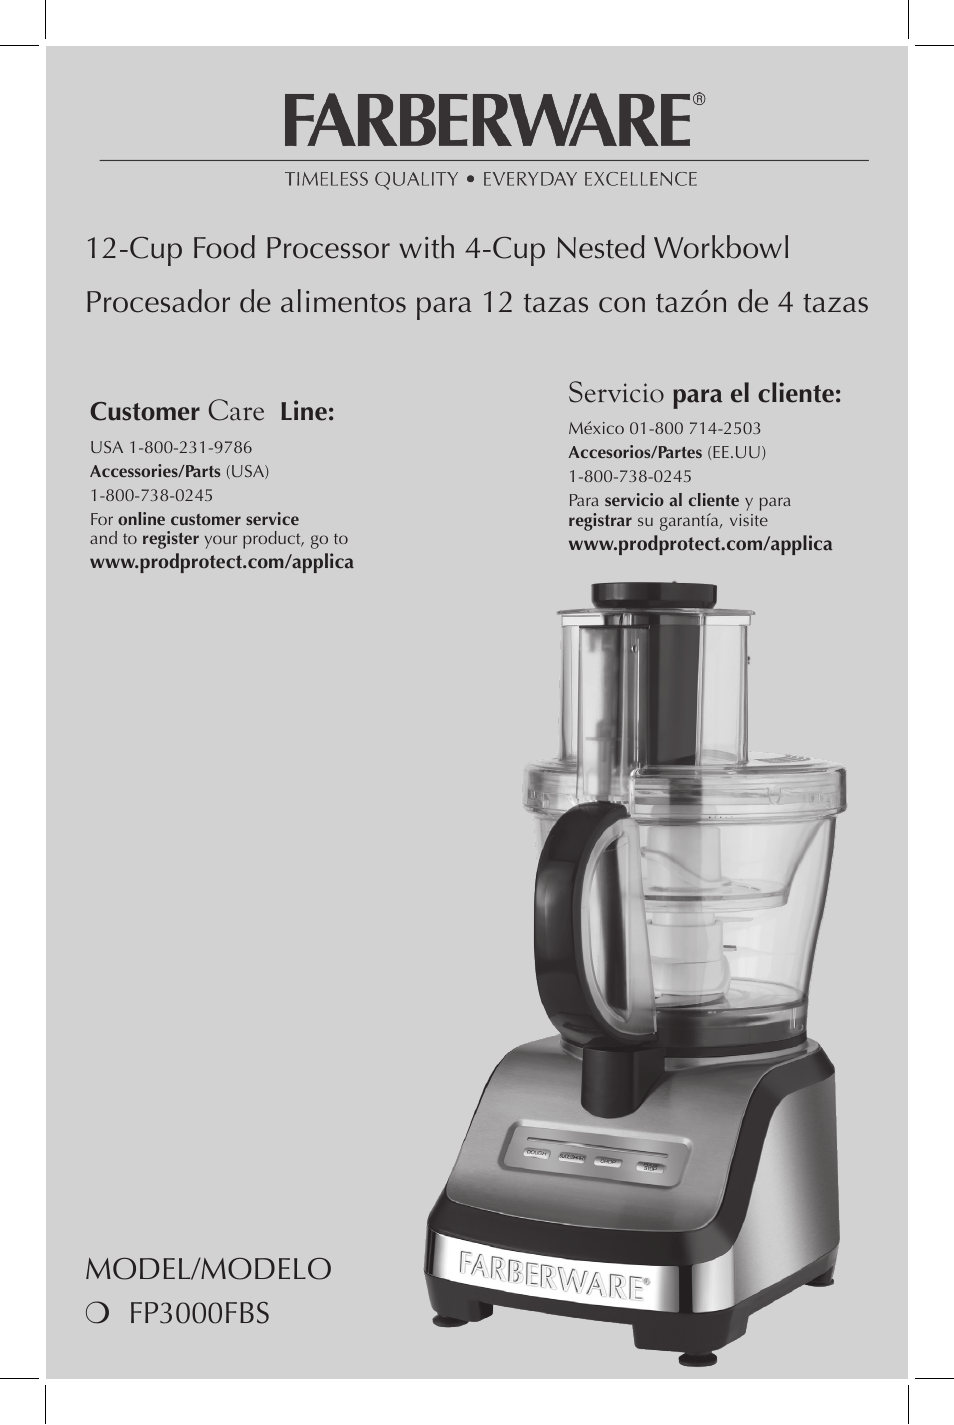 FARBERWARE FP3000FBS 12-Cup Food Processor User Manual